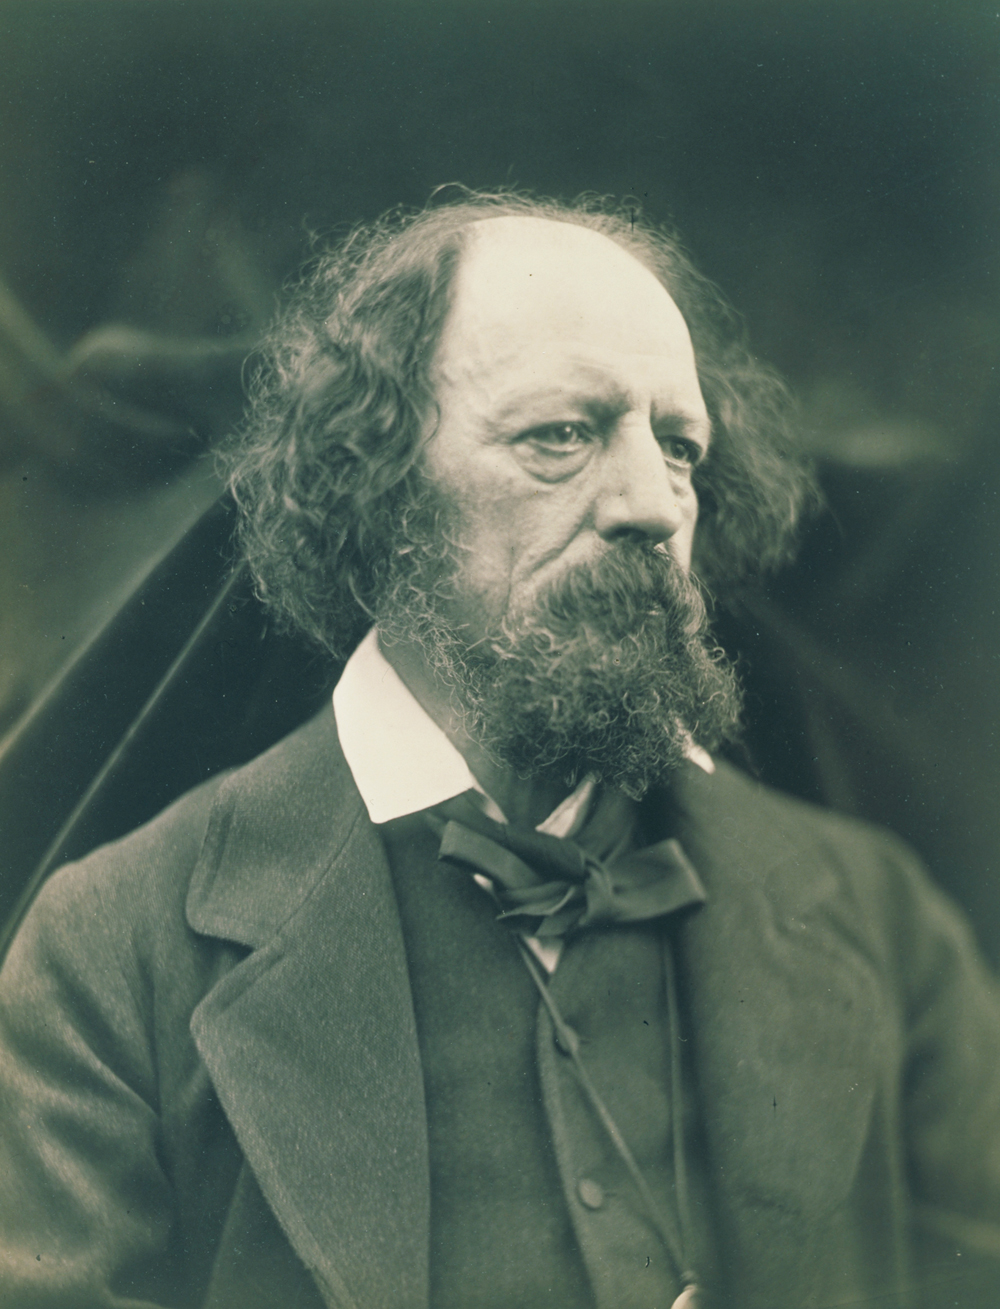 alferd tennyson Alfred tennyson, 1st baron tennyson, frs was poet laureate of the united kingdom during much of queen victoria's reign and remains one of the most popular poets in the english language.